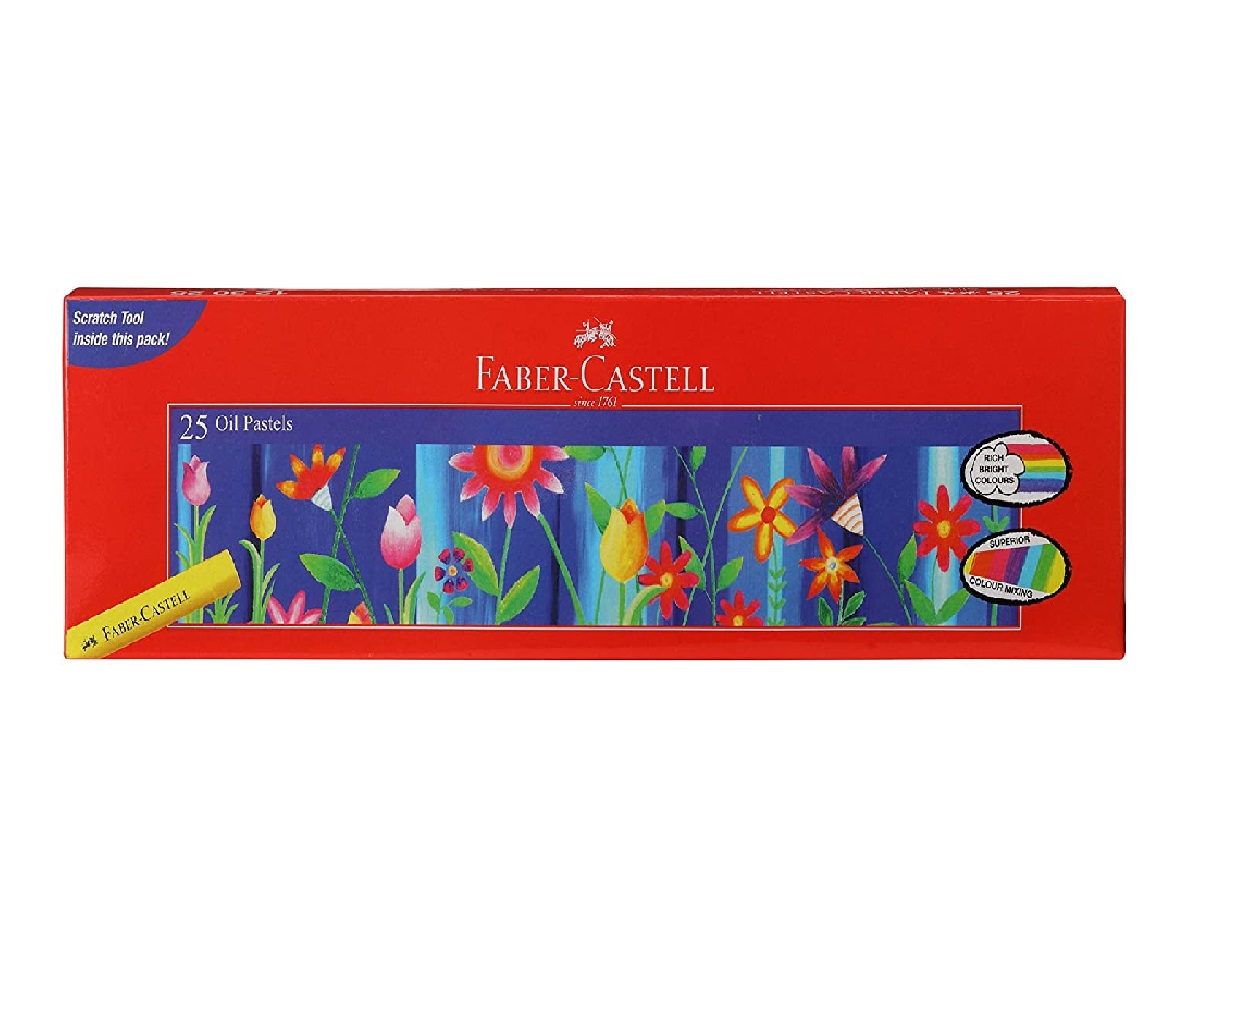 Faber-Castell Oil Pastel Set - Pack of 25 (Assorted)